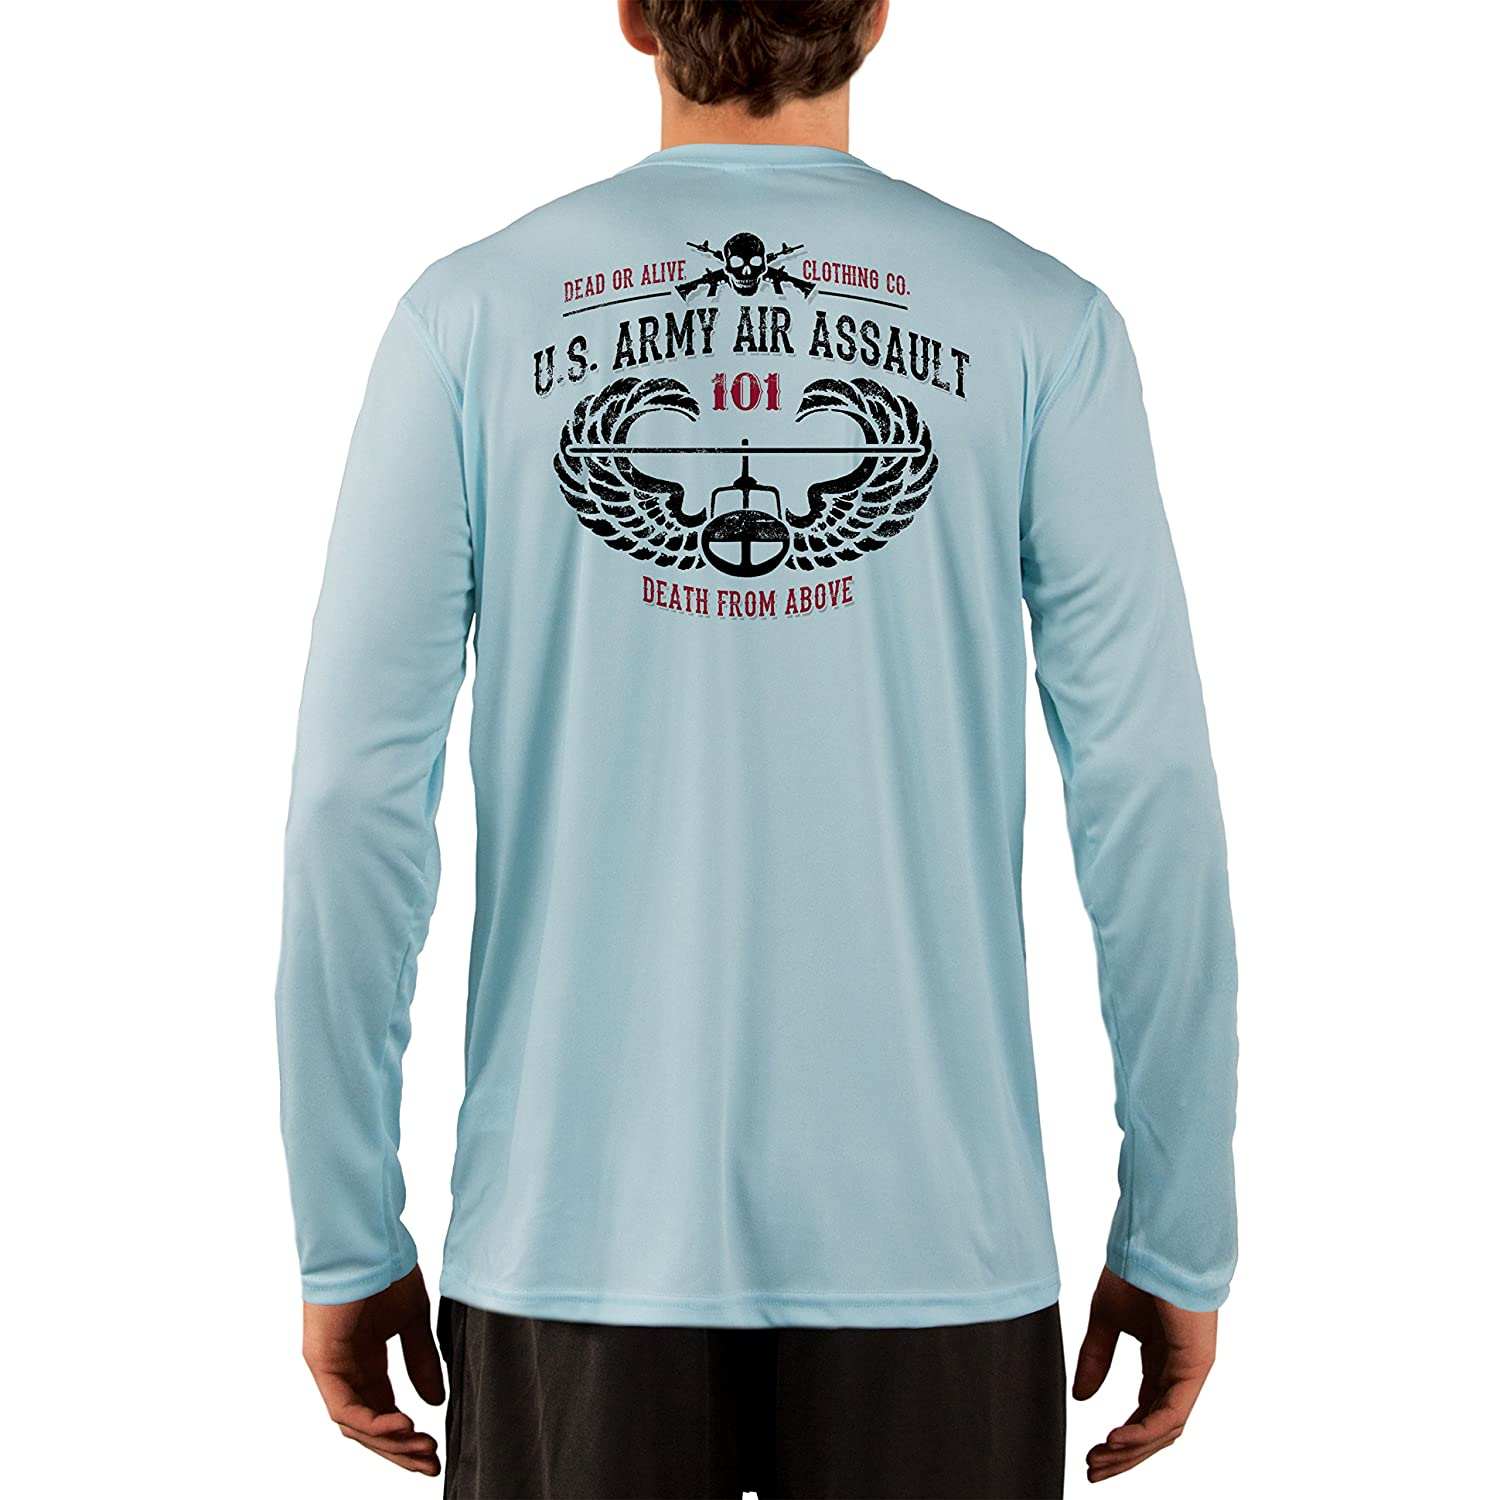 Dead Or Alive Clothing Men's U.S. Army Air Assault UPF 50+ Long Sleeve T-Shirt